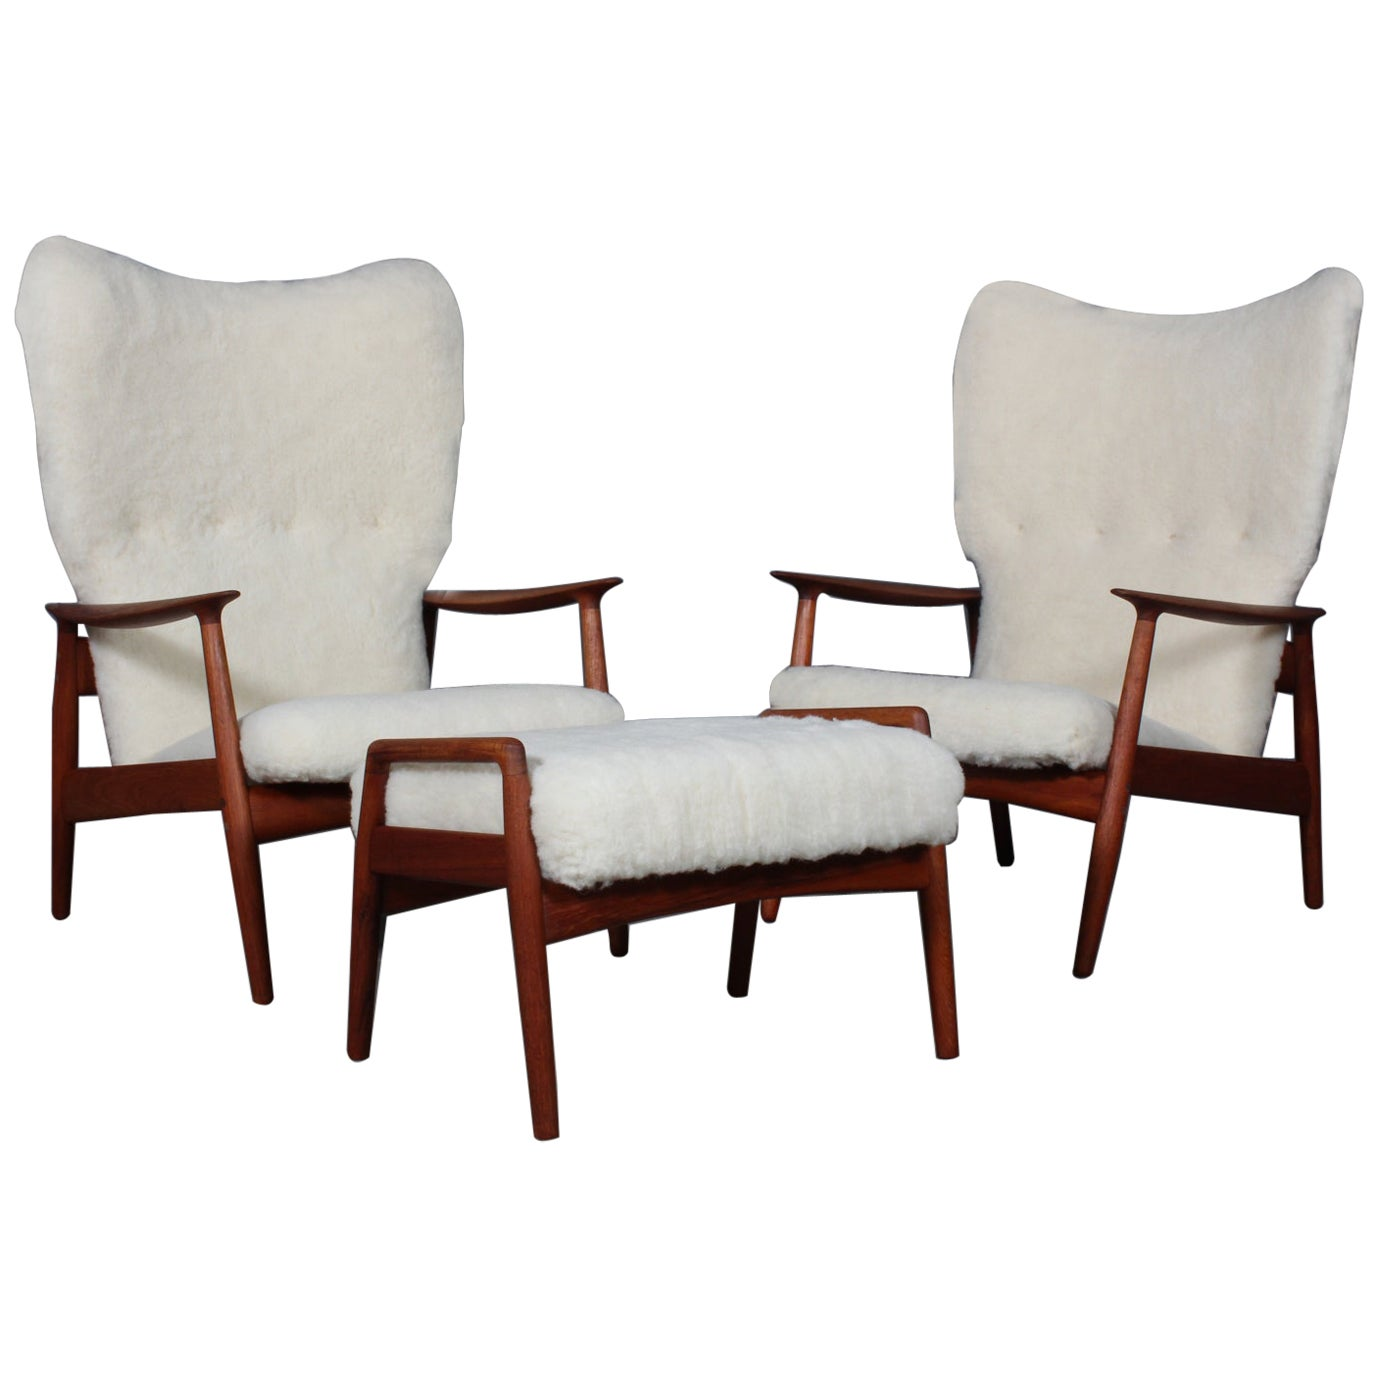 Arne Vodder Set of Lounge Chairs and Ottoman in Sheepskin